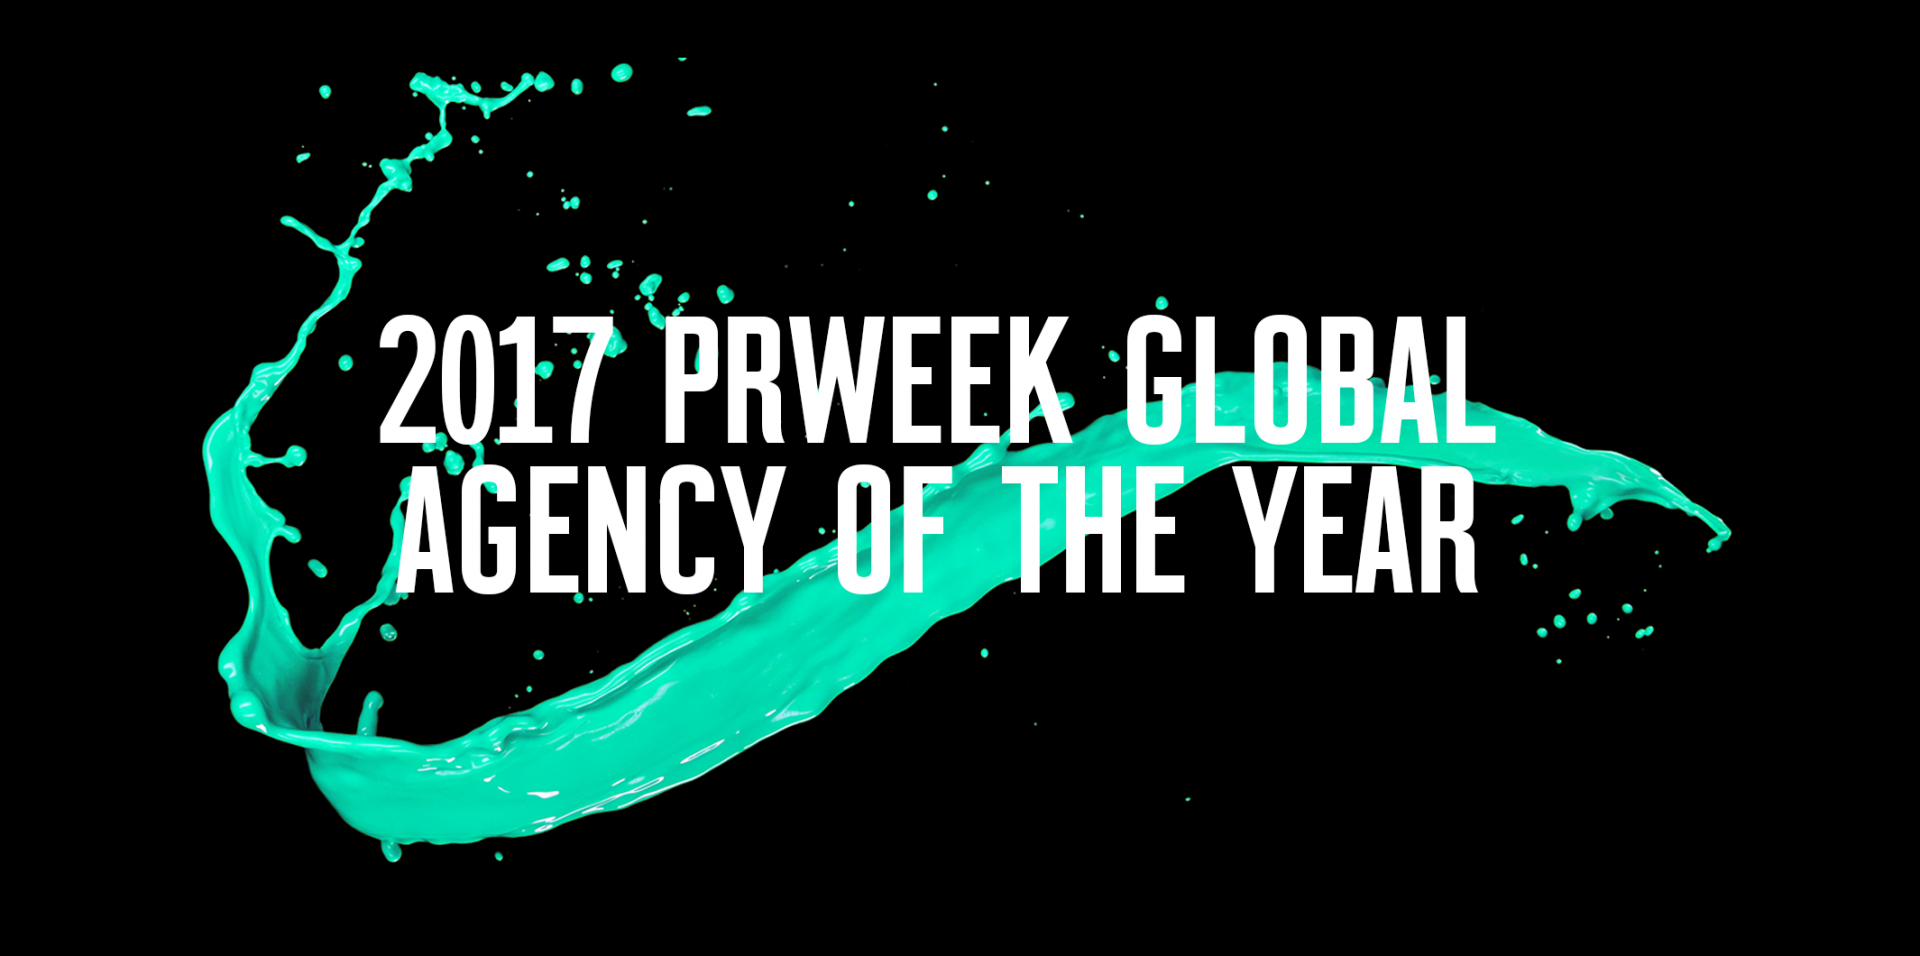 PRWeek Names Weber Shandwick 2017 Global Agency of the Year